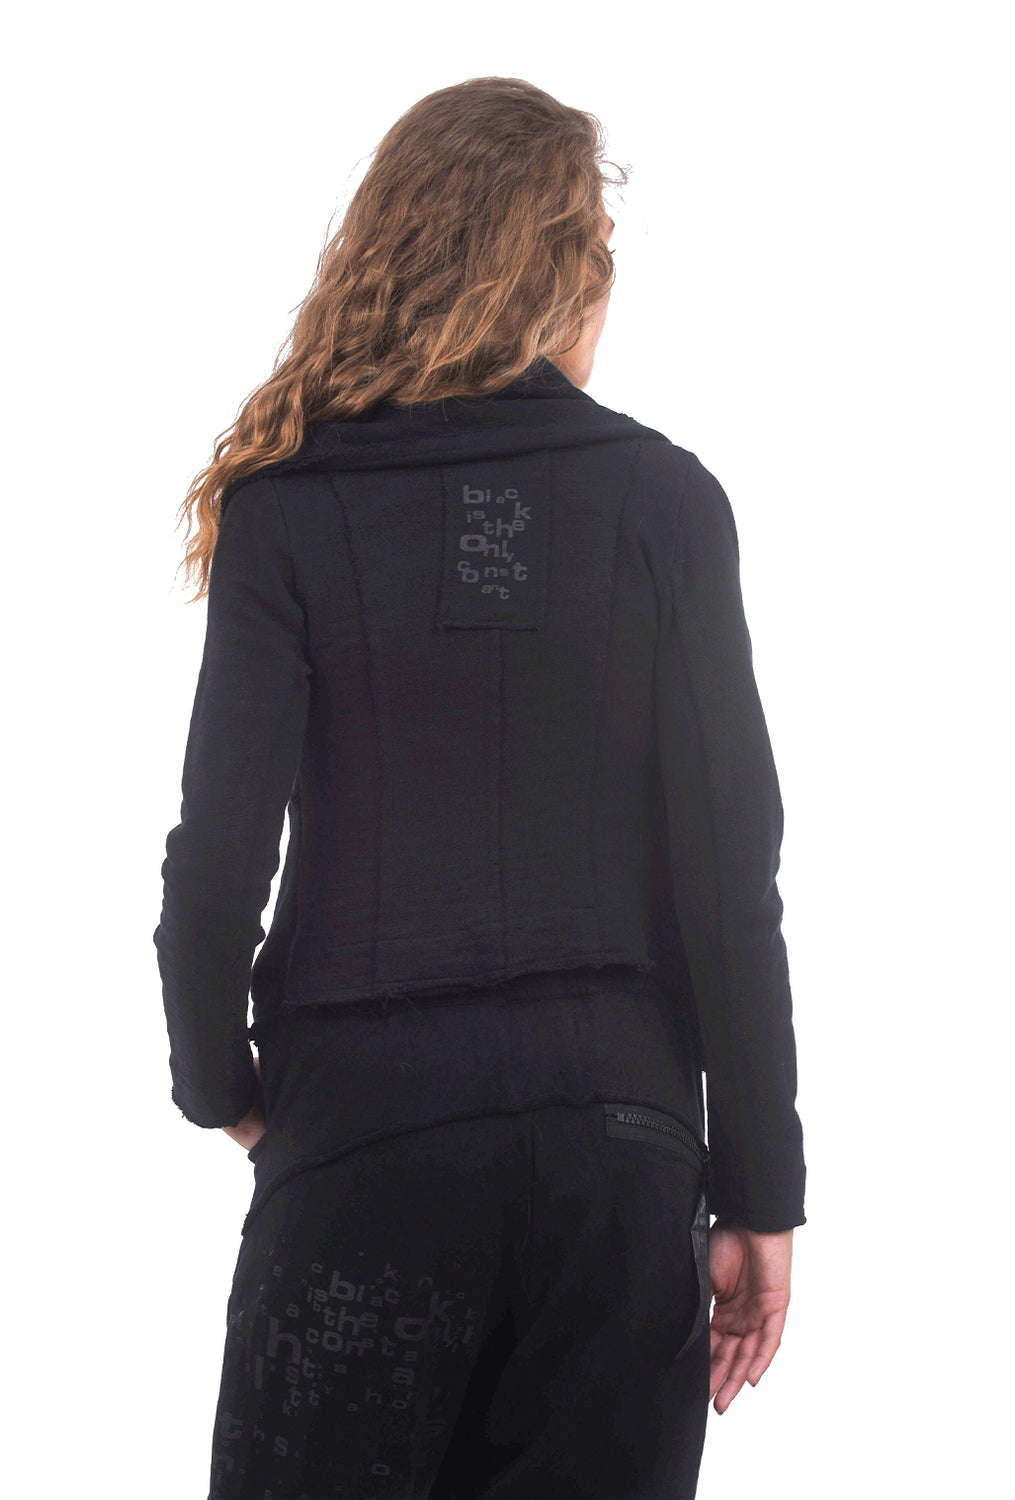 Studio B3 Eving Jacket, Black